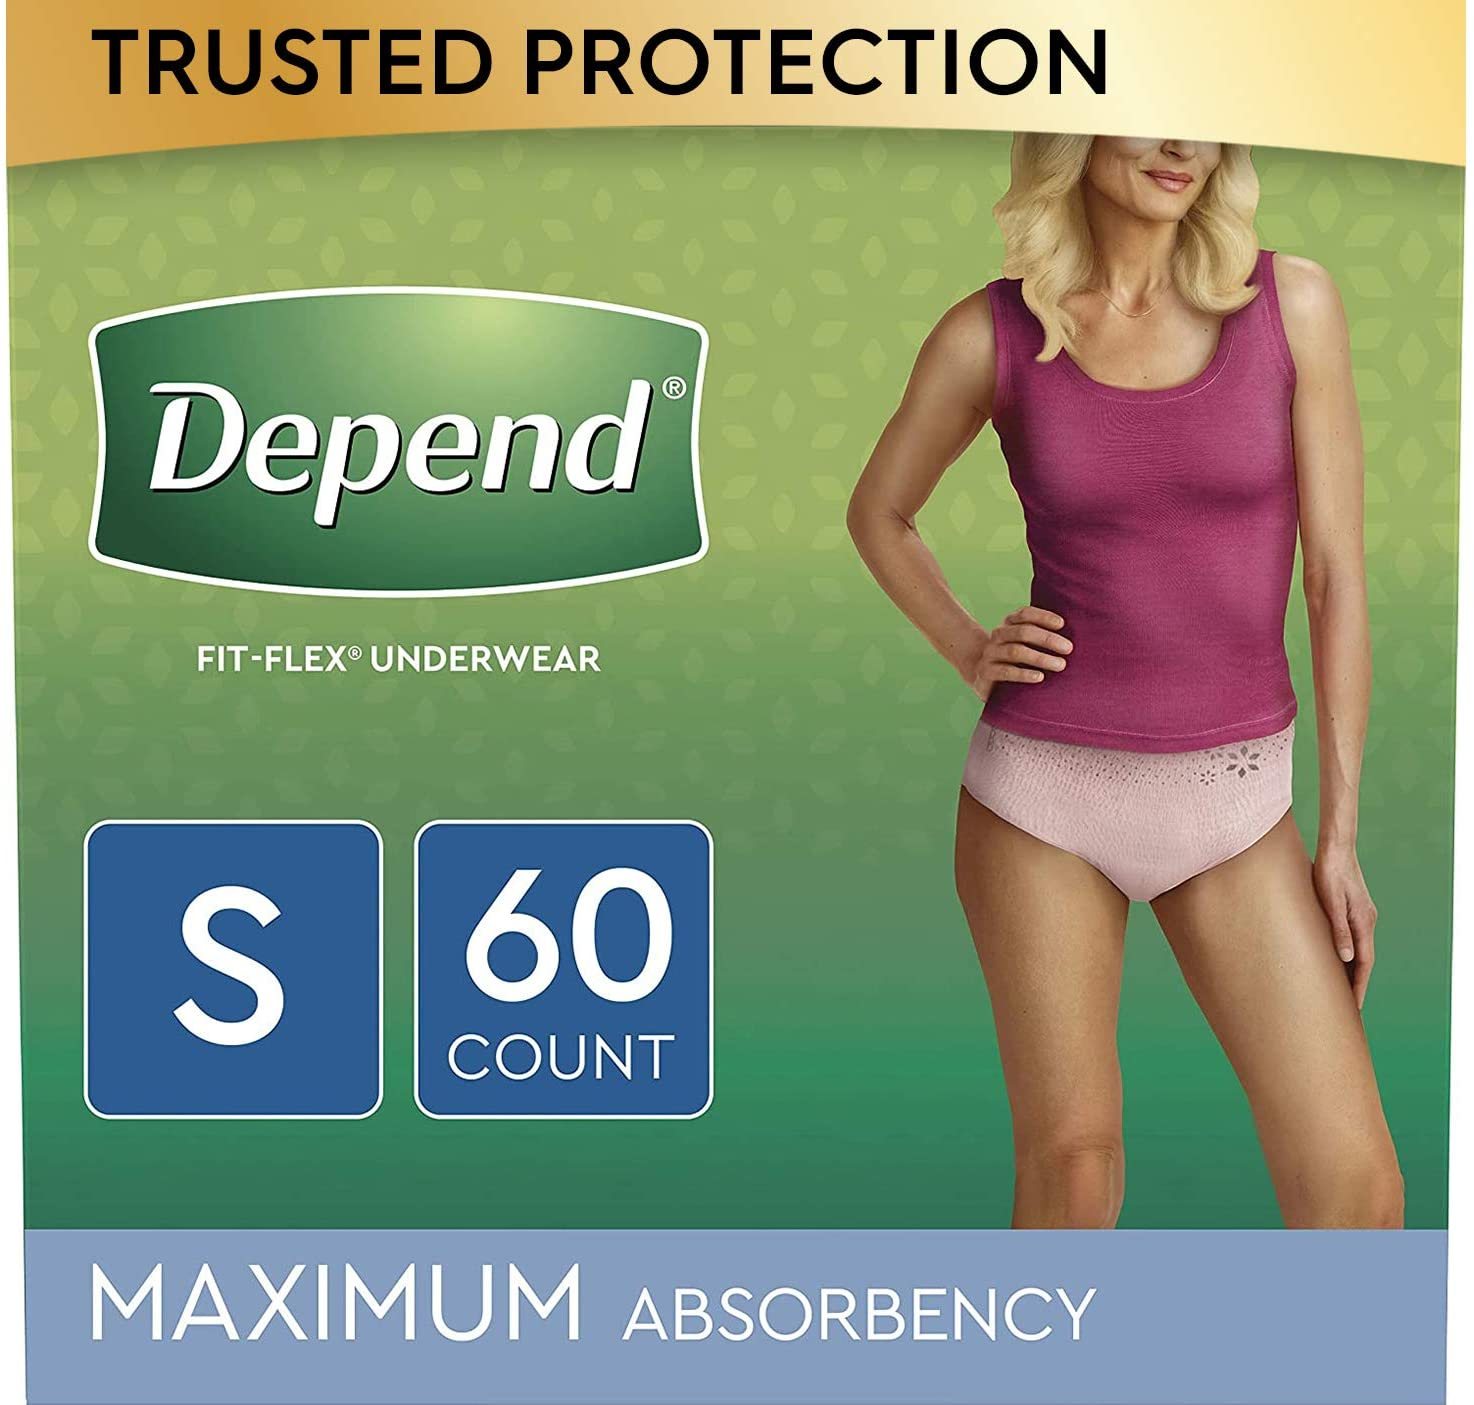 Depend FIT-FLEX Incontinence & Postpartum Underwear for Women, Disposable, Maximum Absorbency, Small, Blush, 60 Count (2 Packs of 30) (Packaging May Vary)